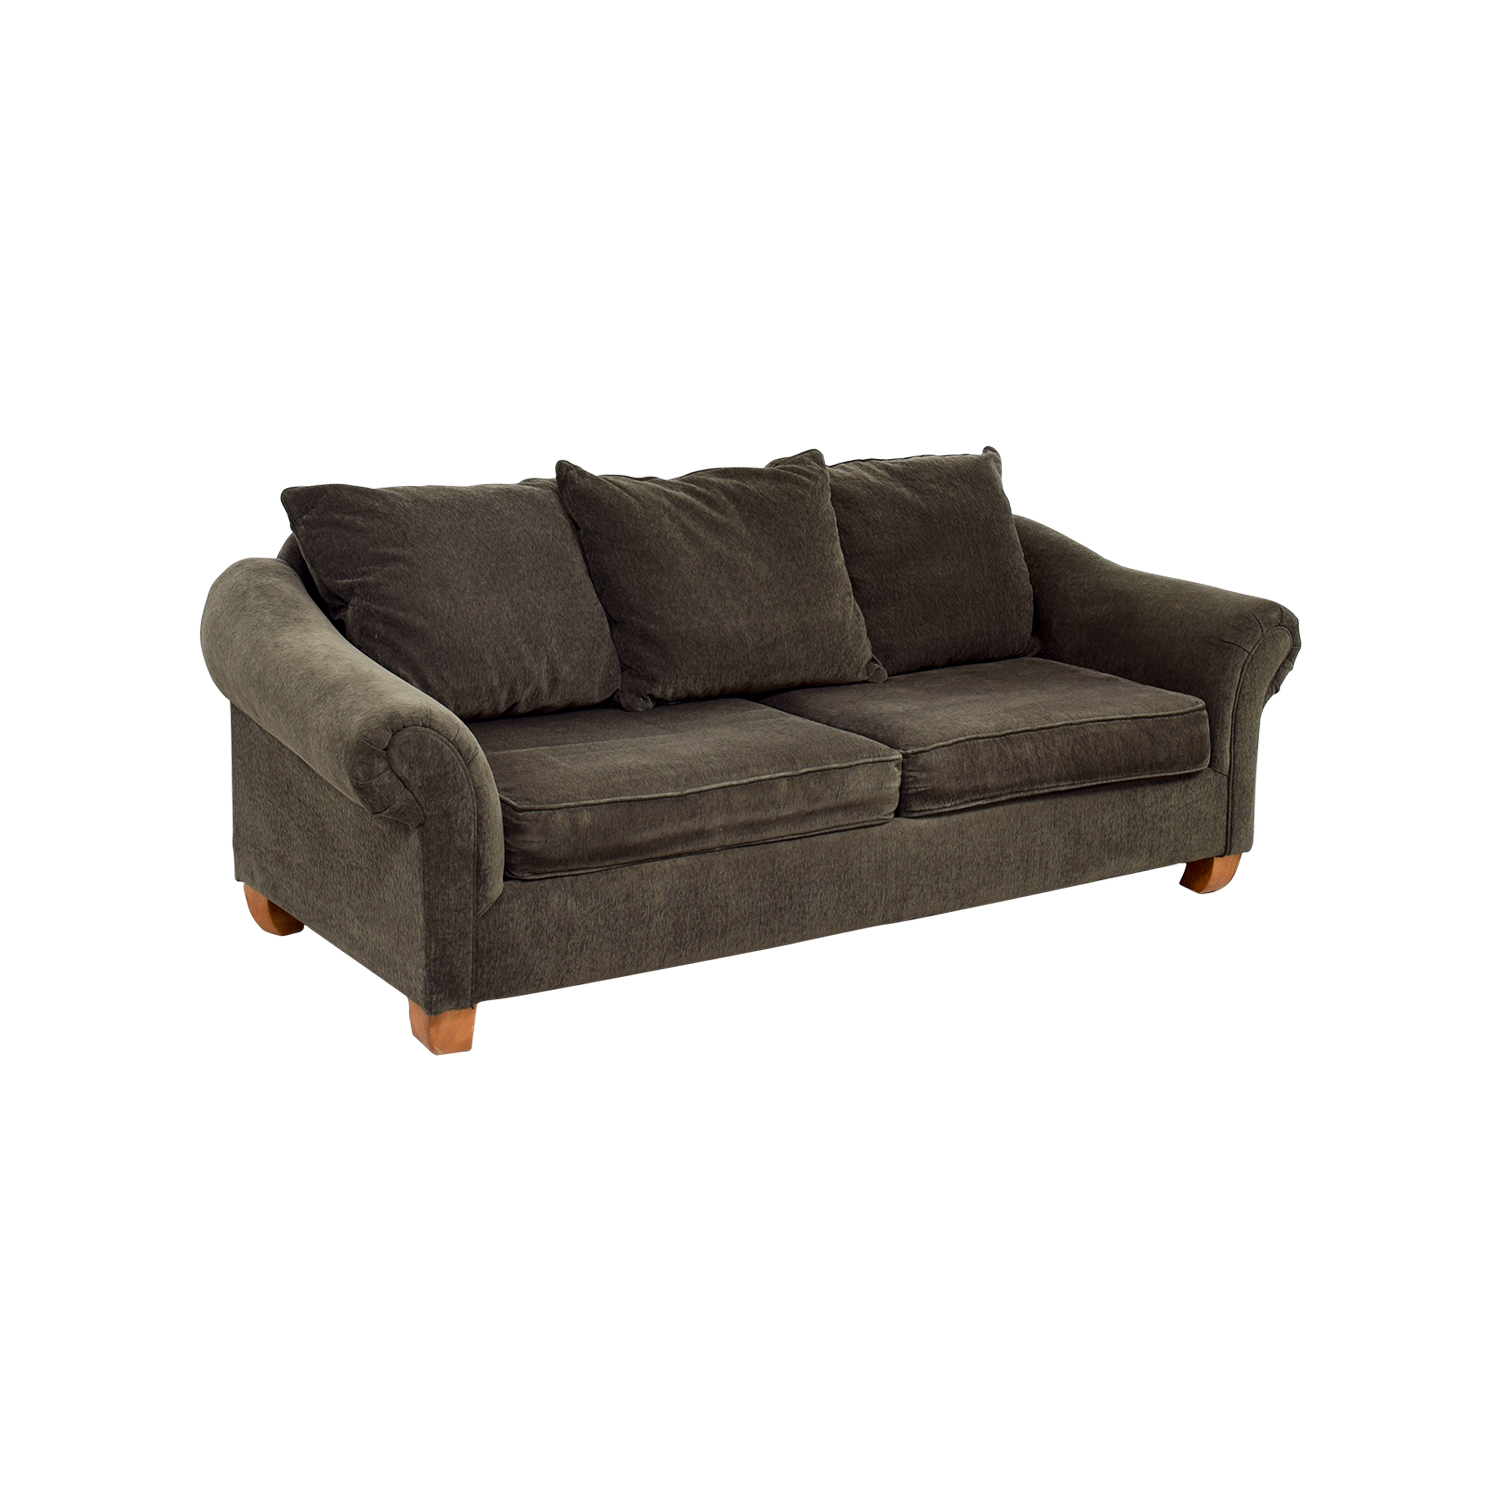 star furniture sofas voyager george sofa 85 off brown curved arm